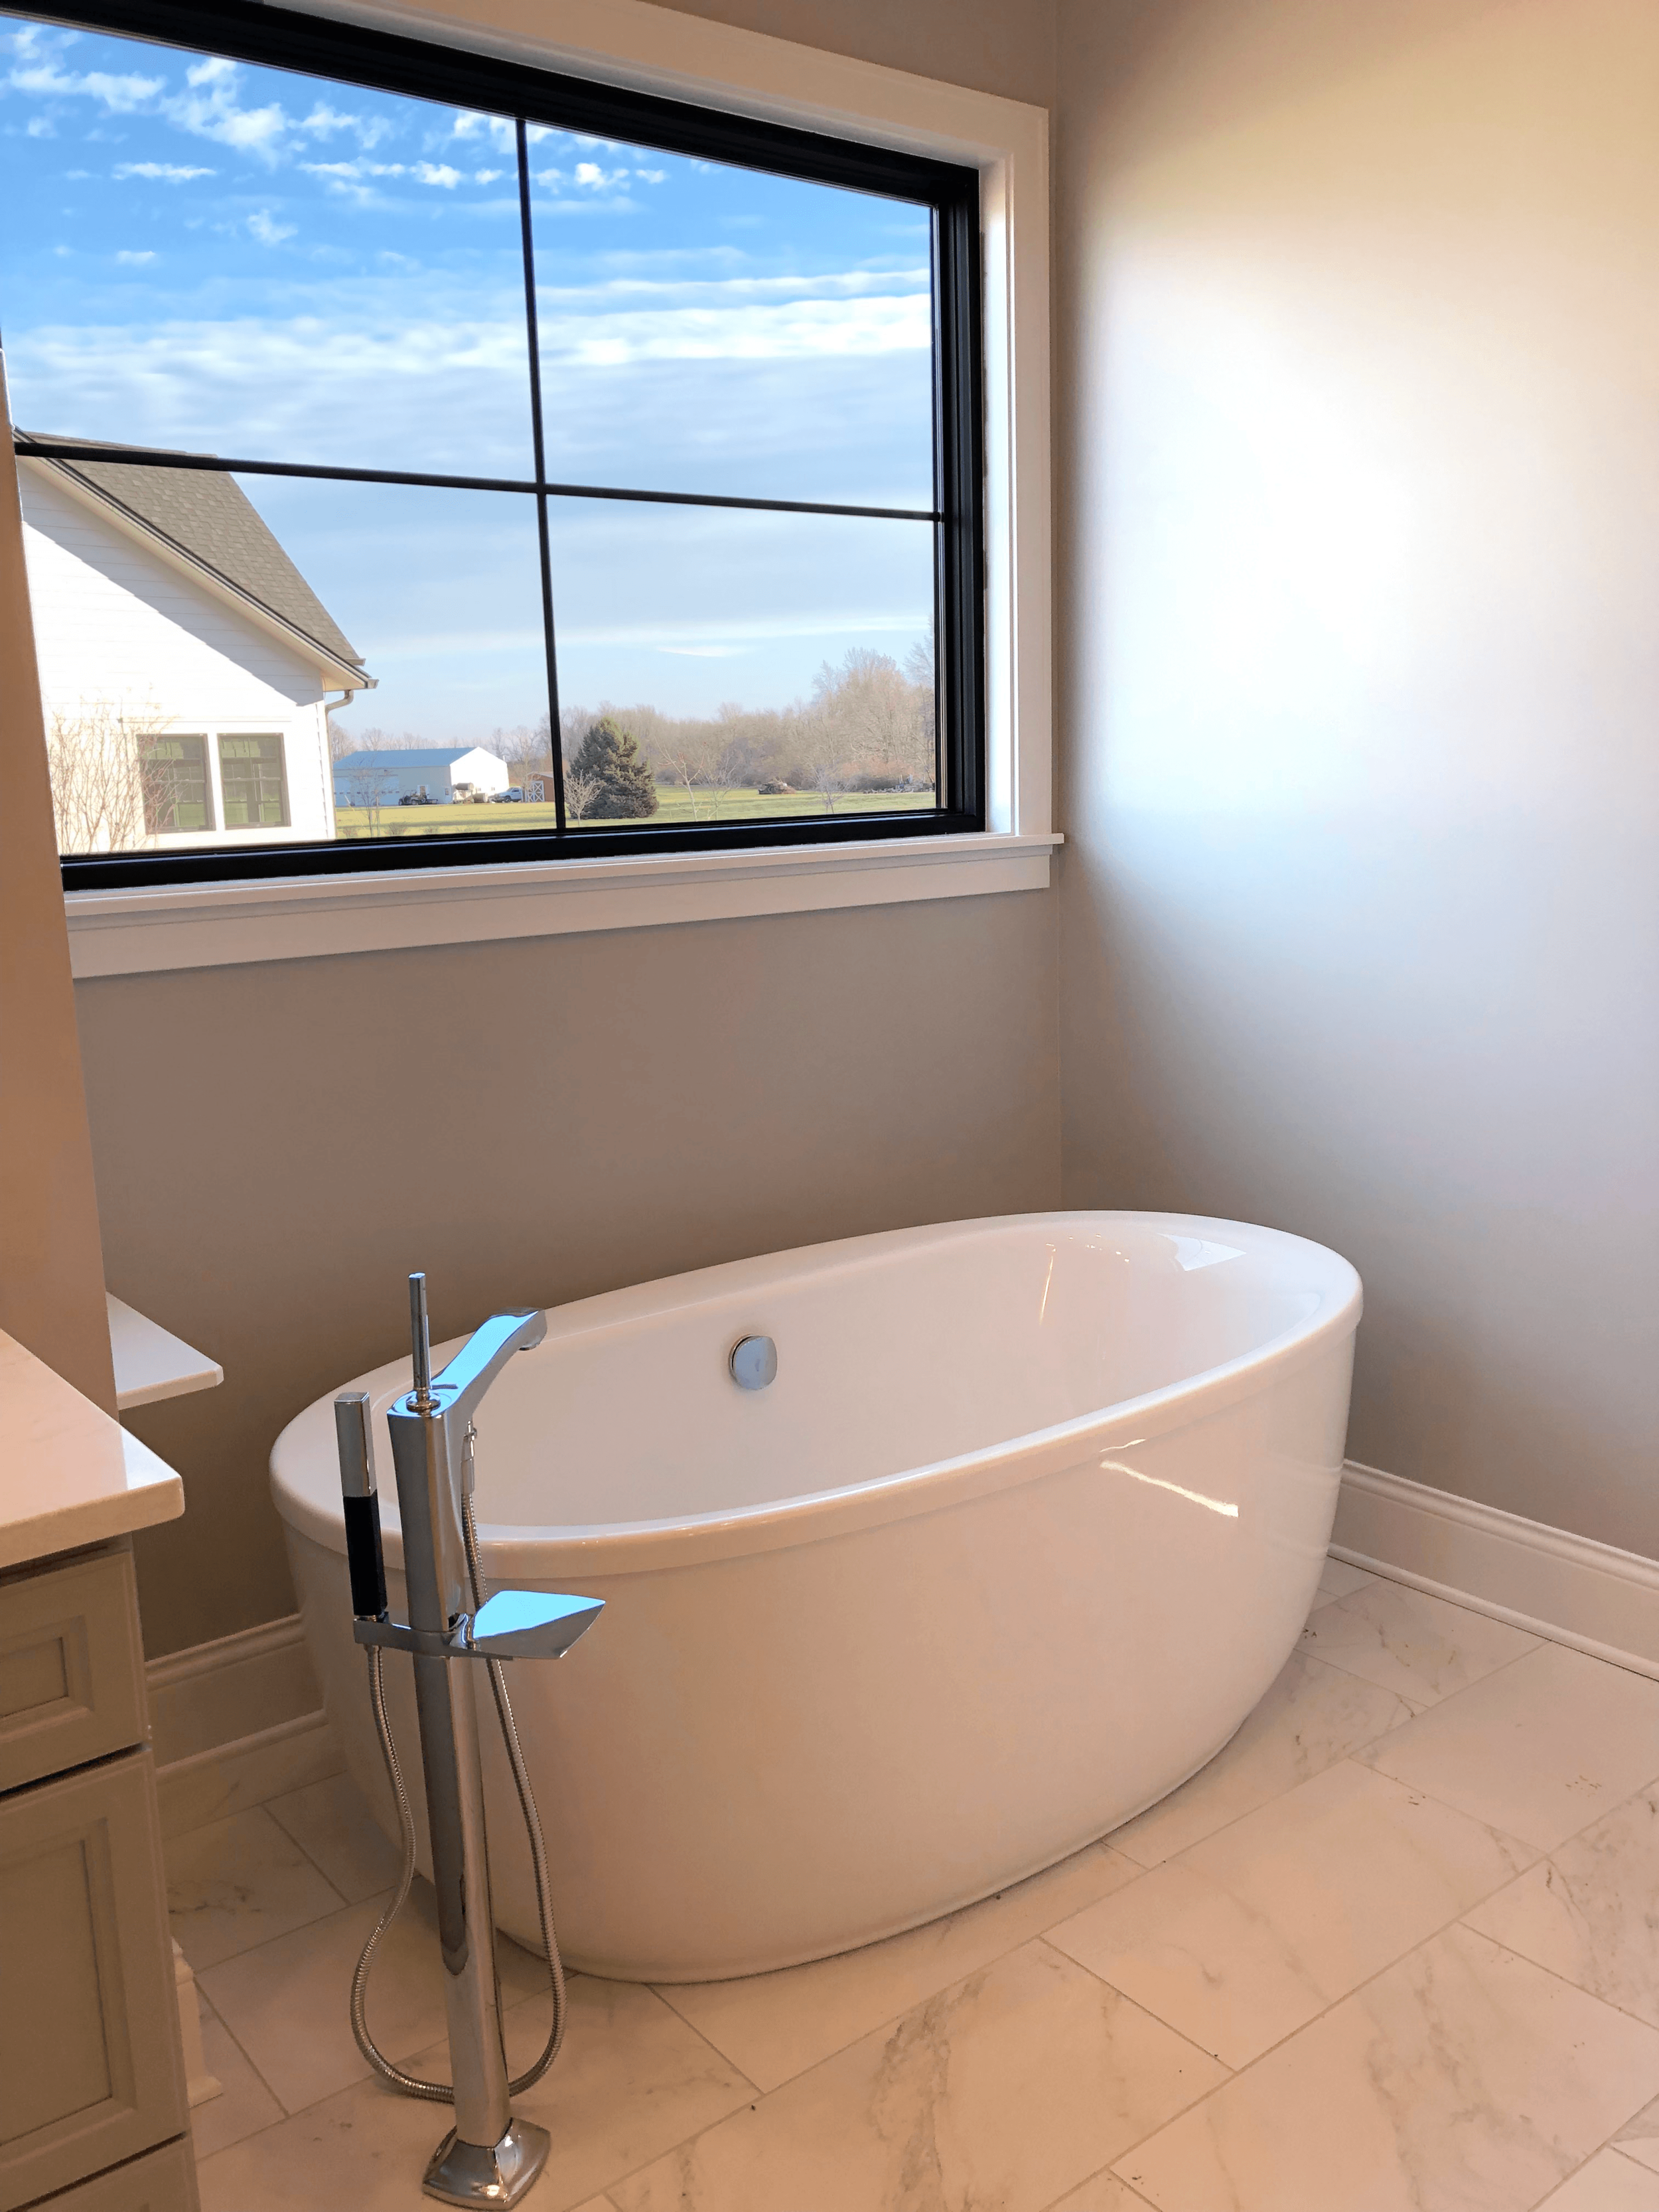 There's nothing better than natural light for a relaxing bath.